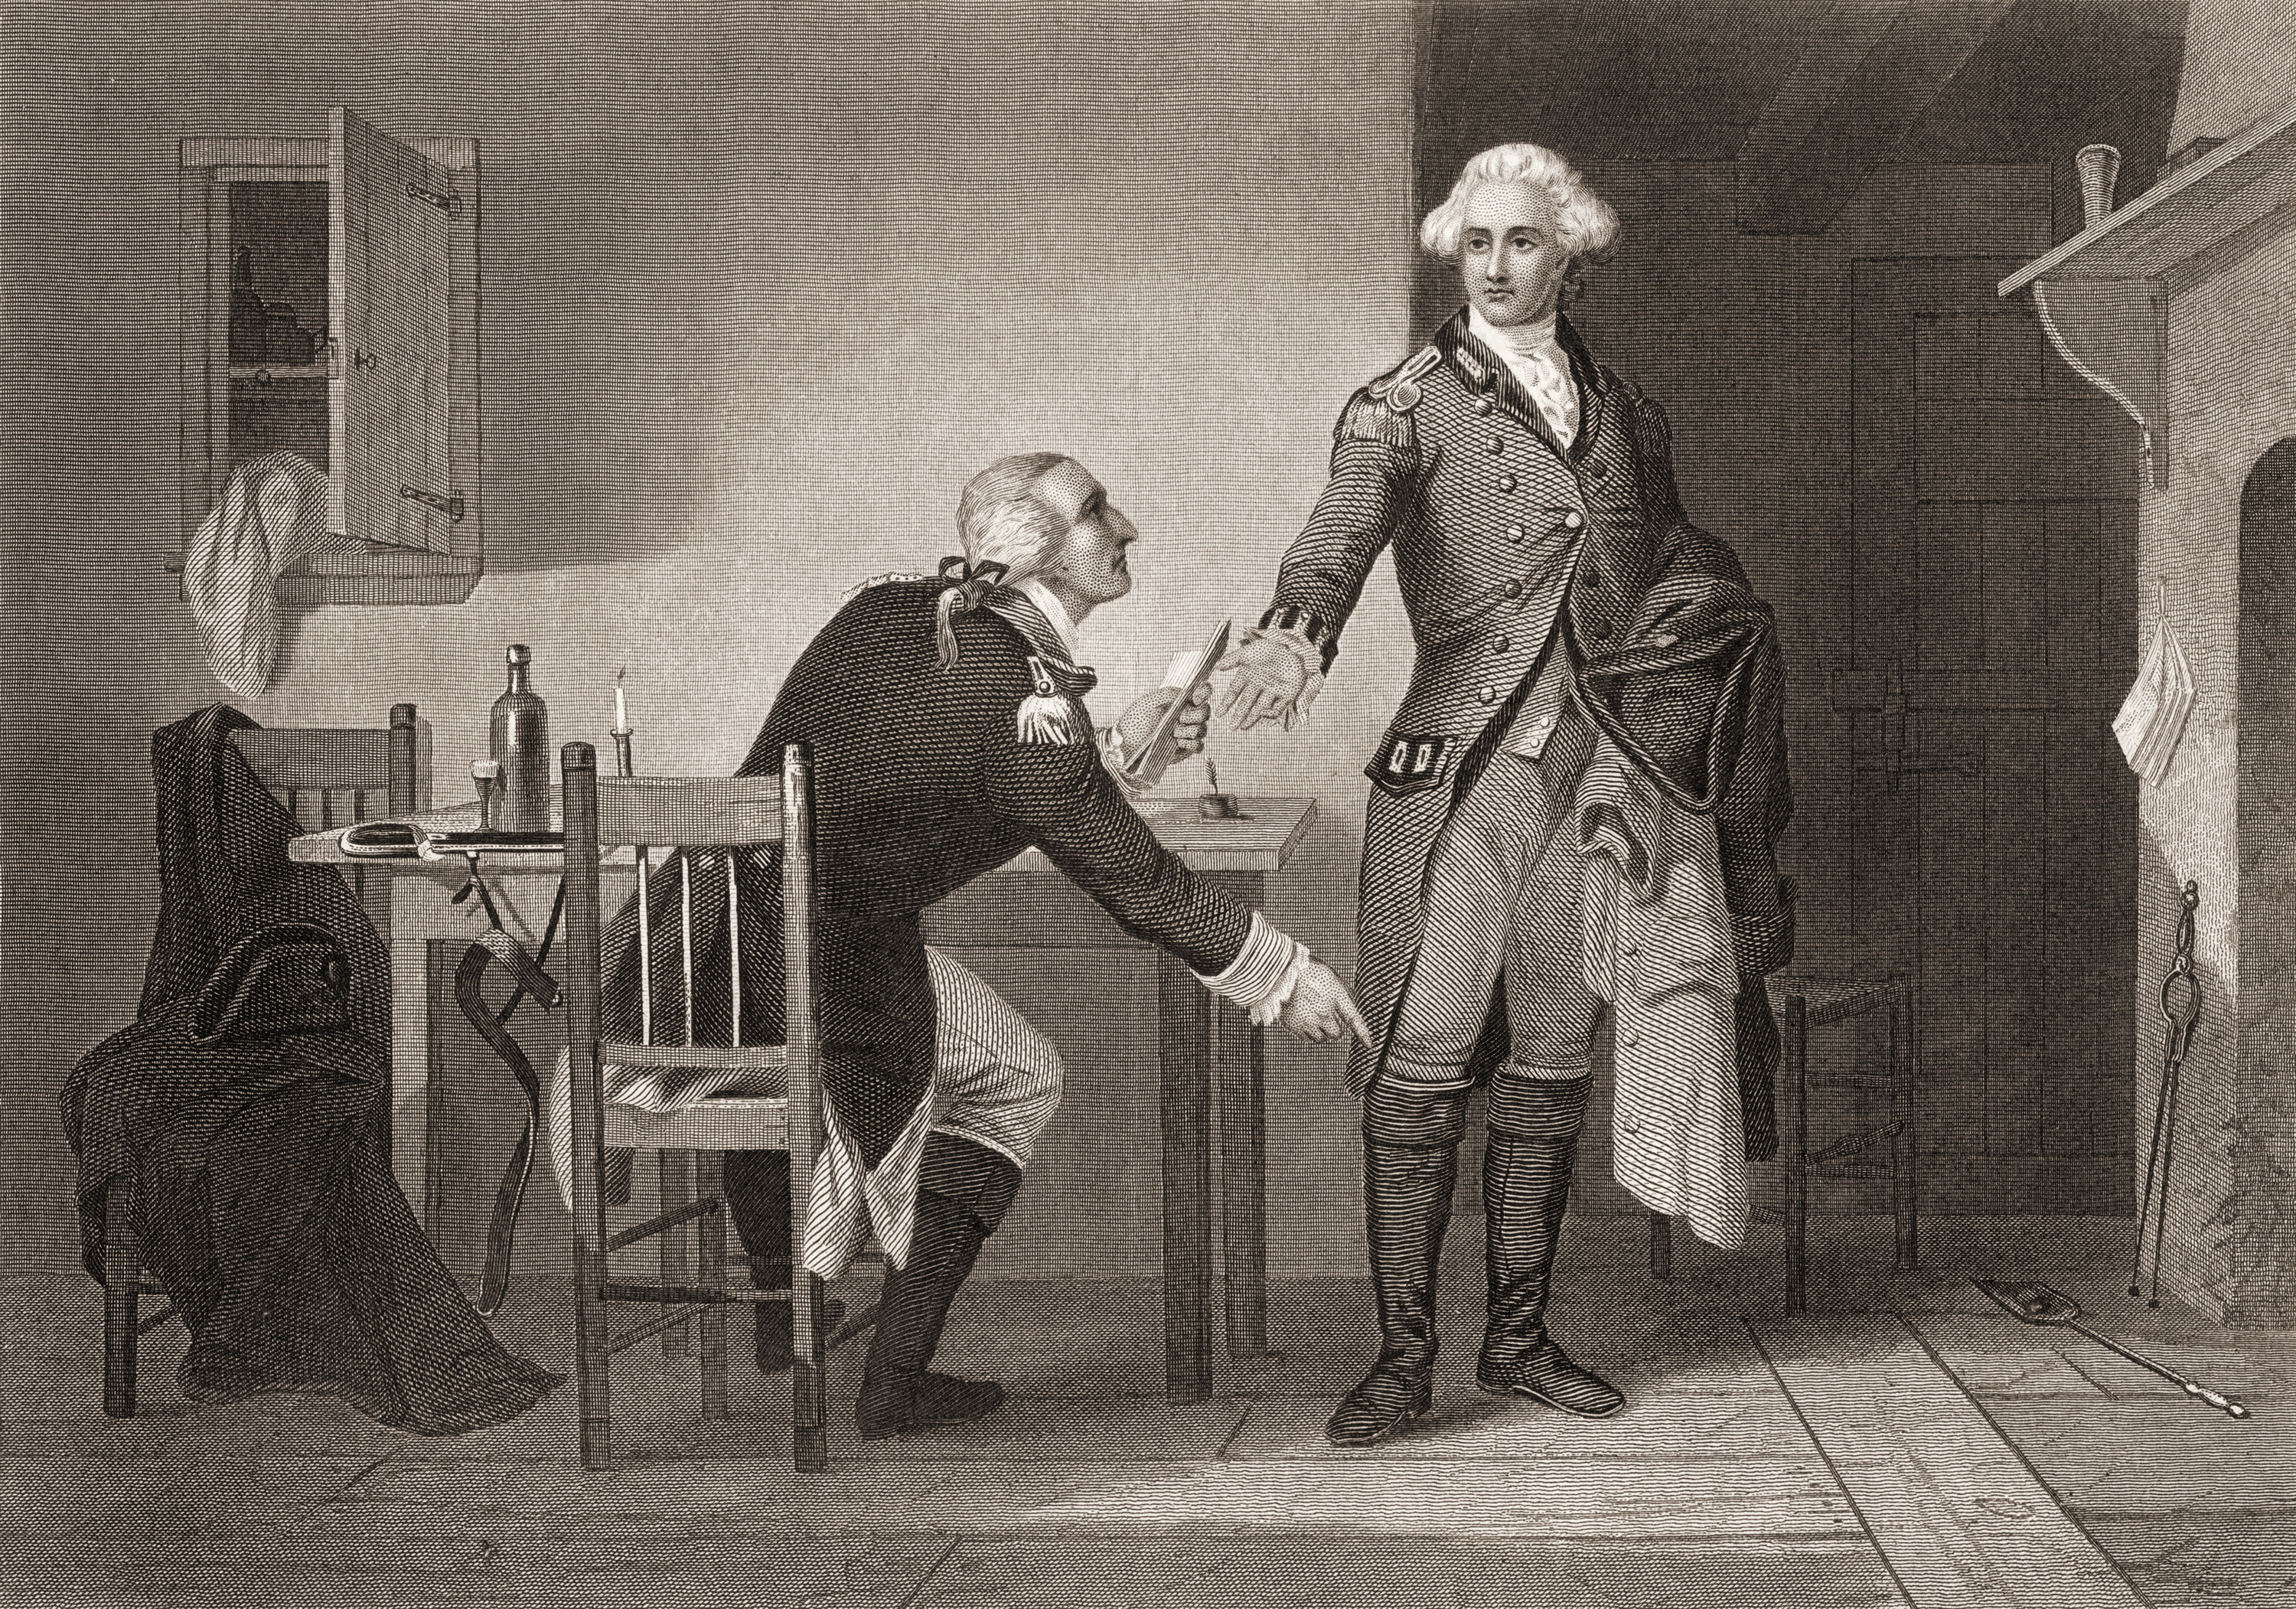 an overview of george washingtons escape from the british army at new york It is thanks to the first lady that the famous stuart painting of george washington survived the british army's  when dolley madison  on new york avenue and.